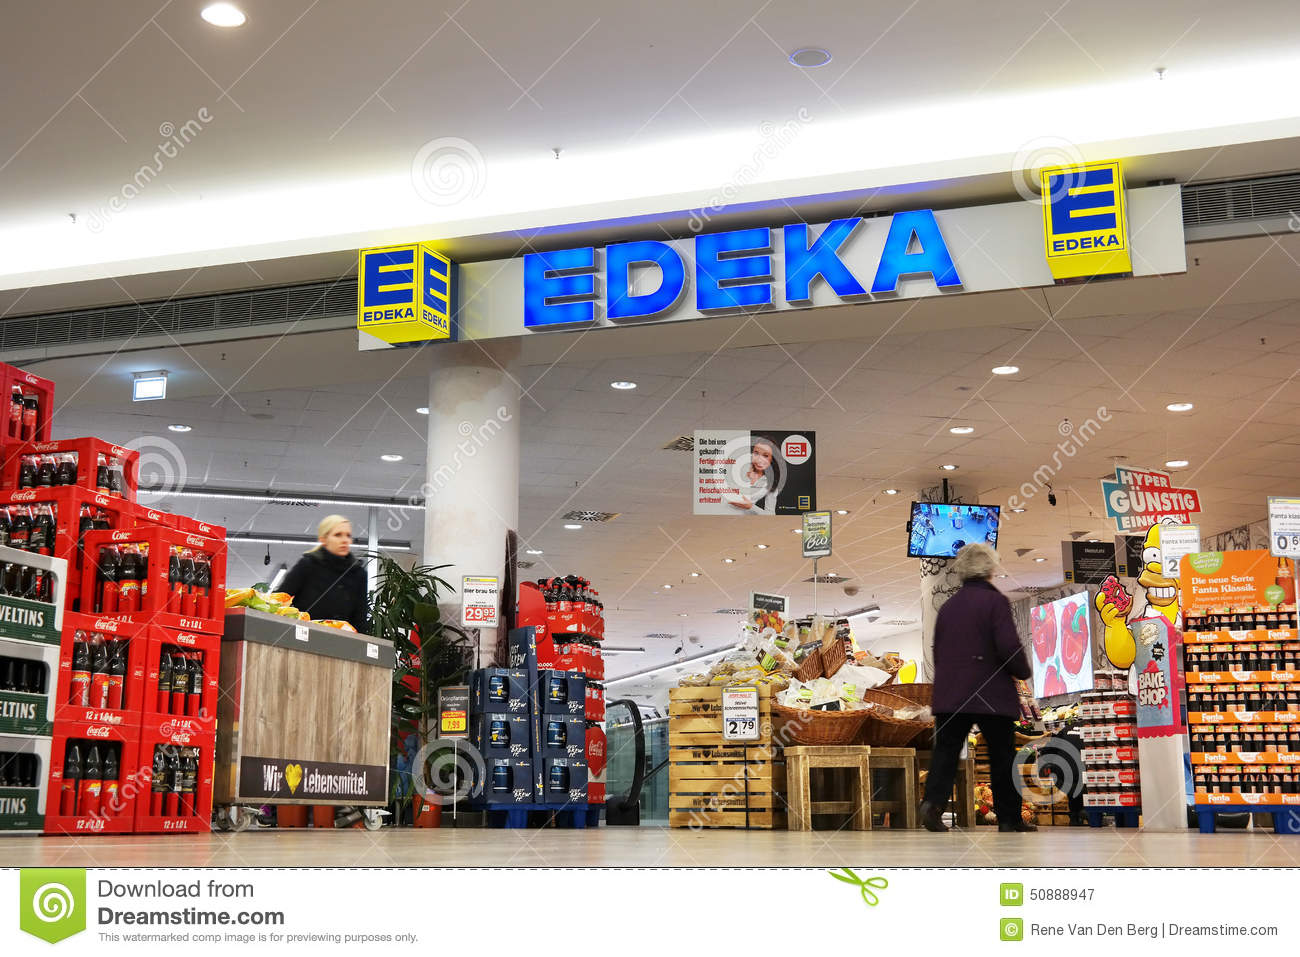 Edeka Label Photos Free Royalty Free Stock Photos From Dreamstime